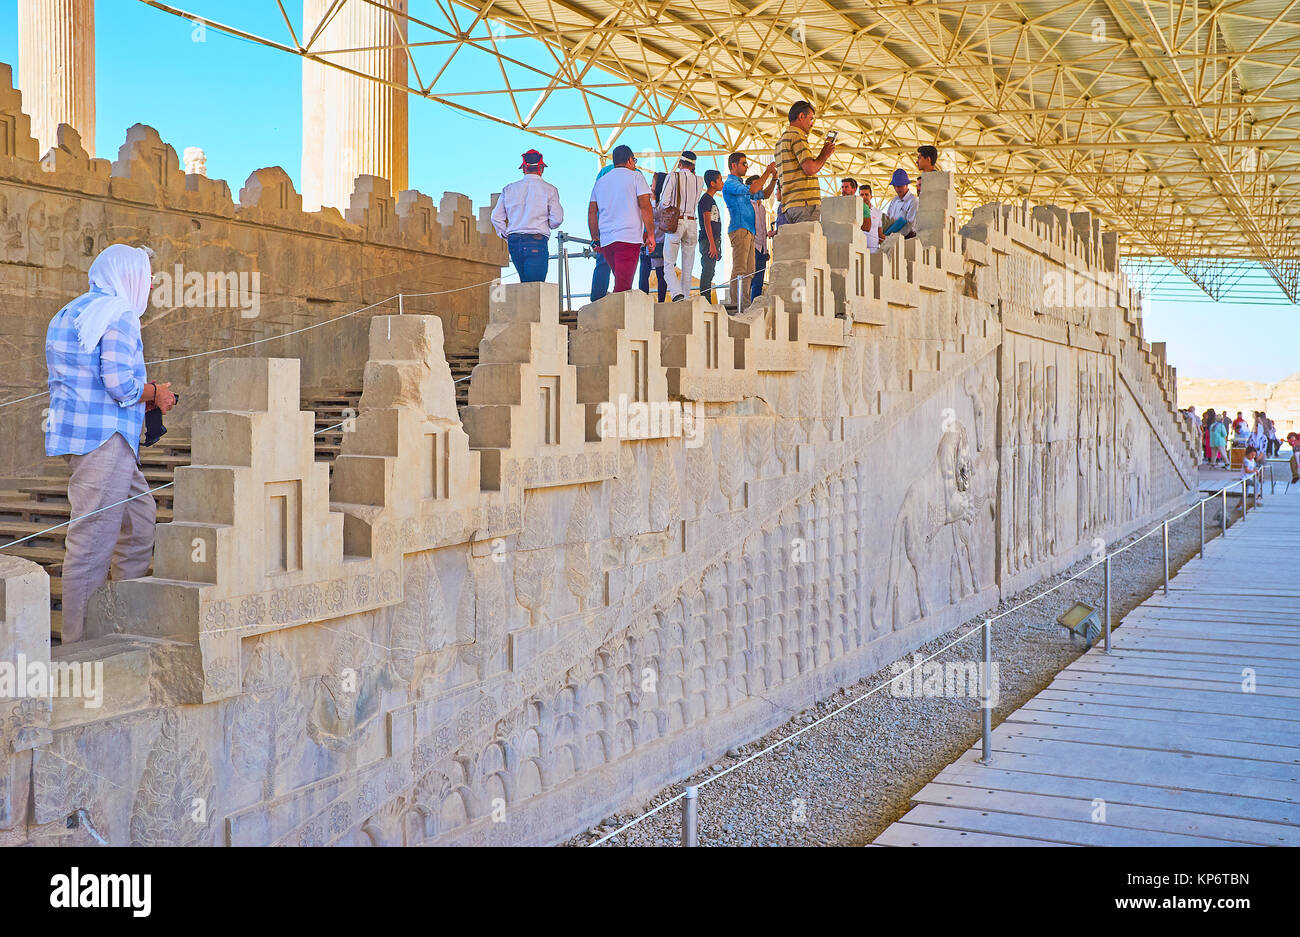 PERSEPOLIS, IRAN - OCTOBER 13, 2017: The Eastern Stairs of Apadana palace are famous for outstanding reliefs, preserved - Stock Image